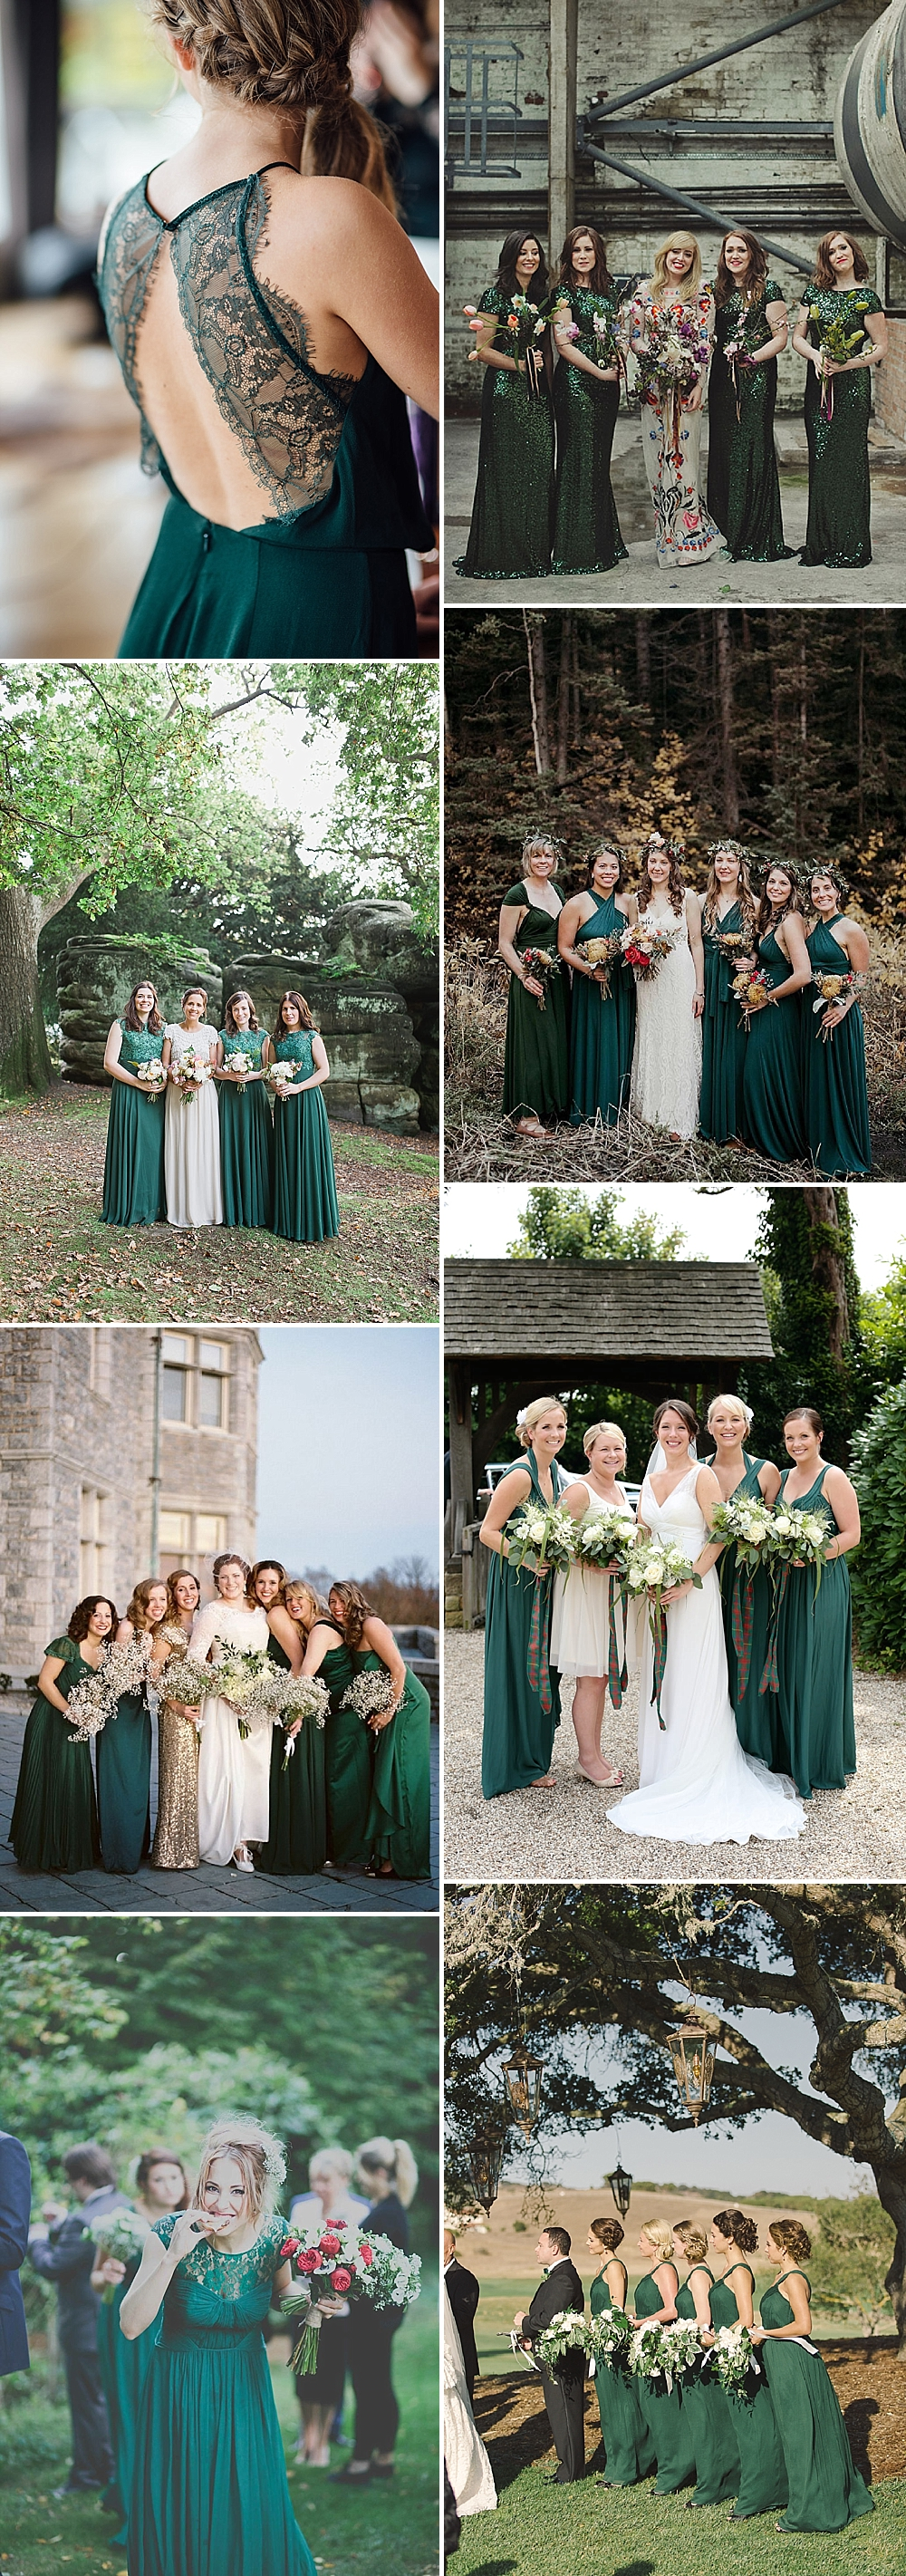 Forest Green Bridesmaid Inspiration